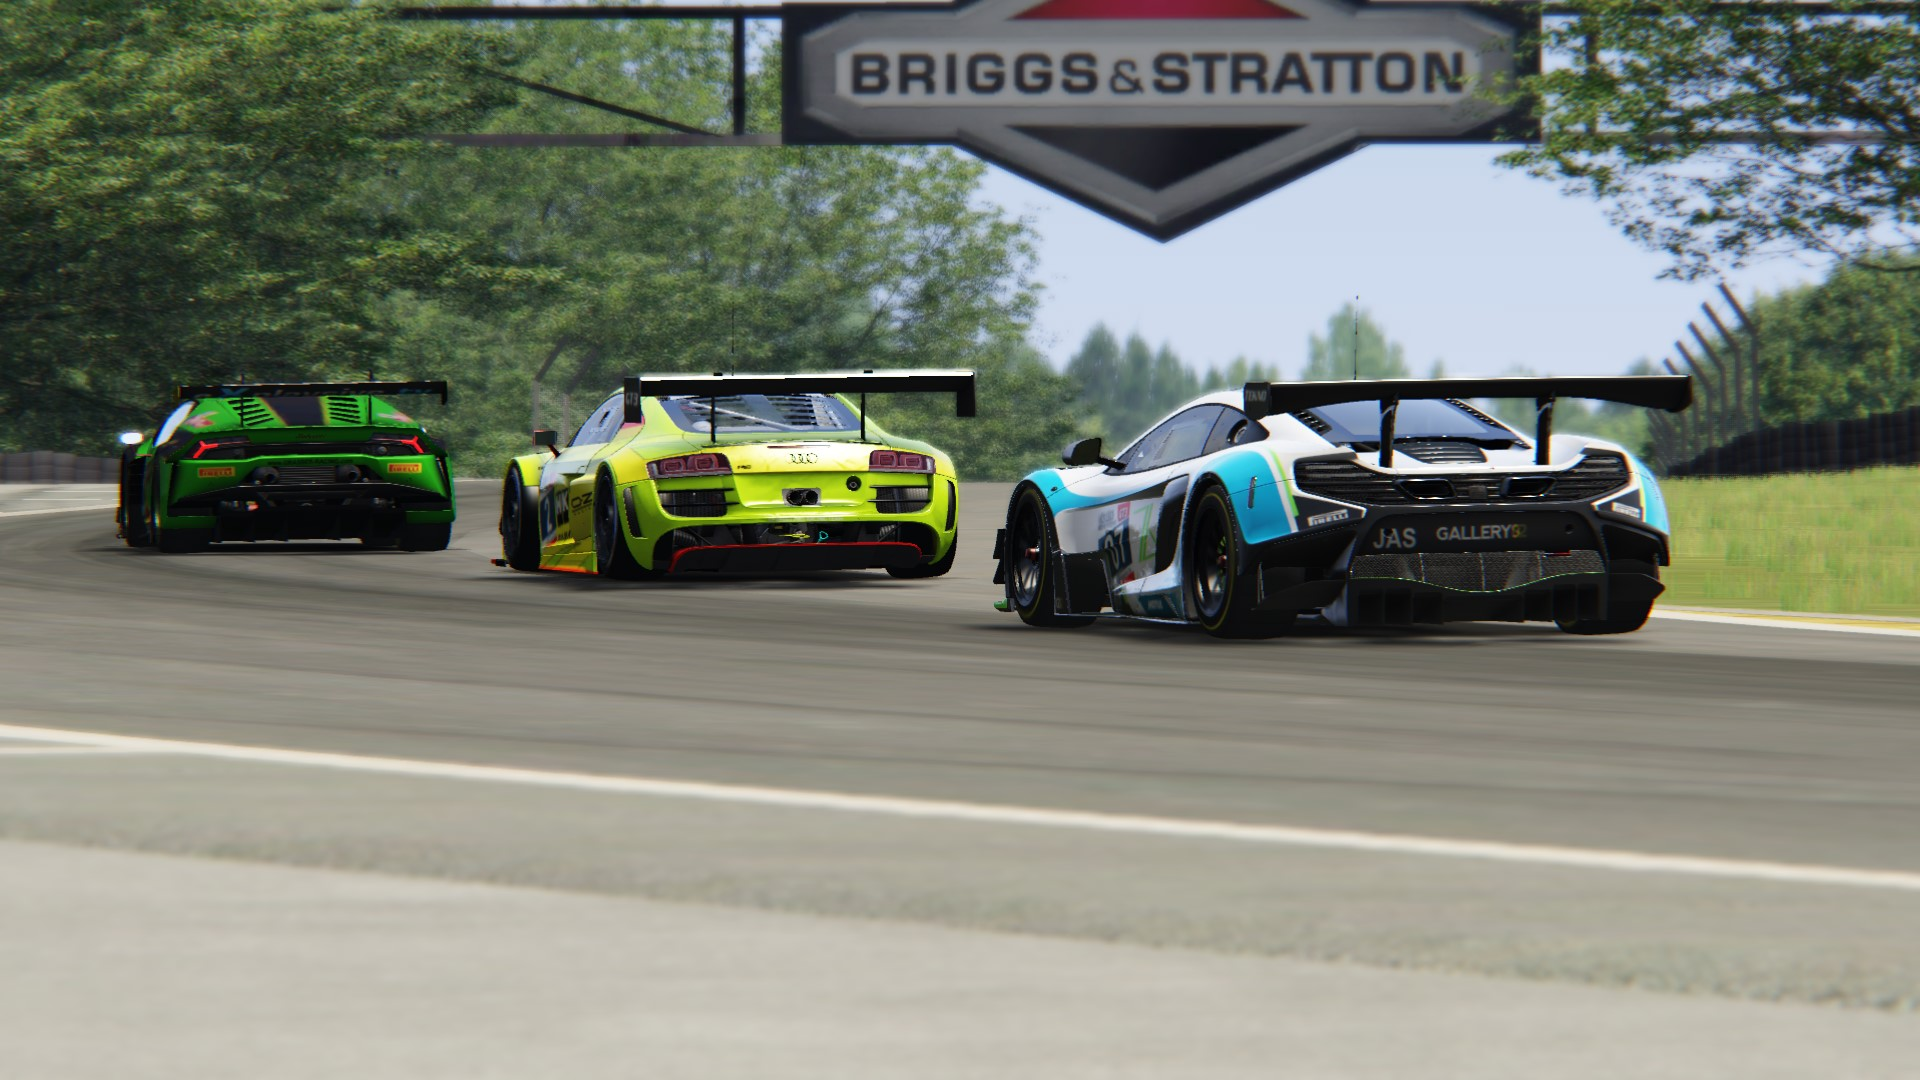 Screenshot_ks_mclaren_650_gt3_road_america_15-4-117-23-44-14.jpg